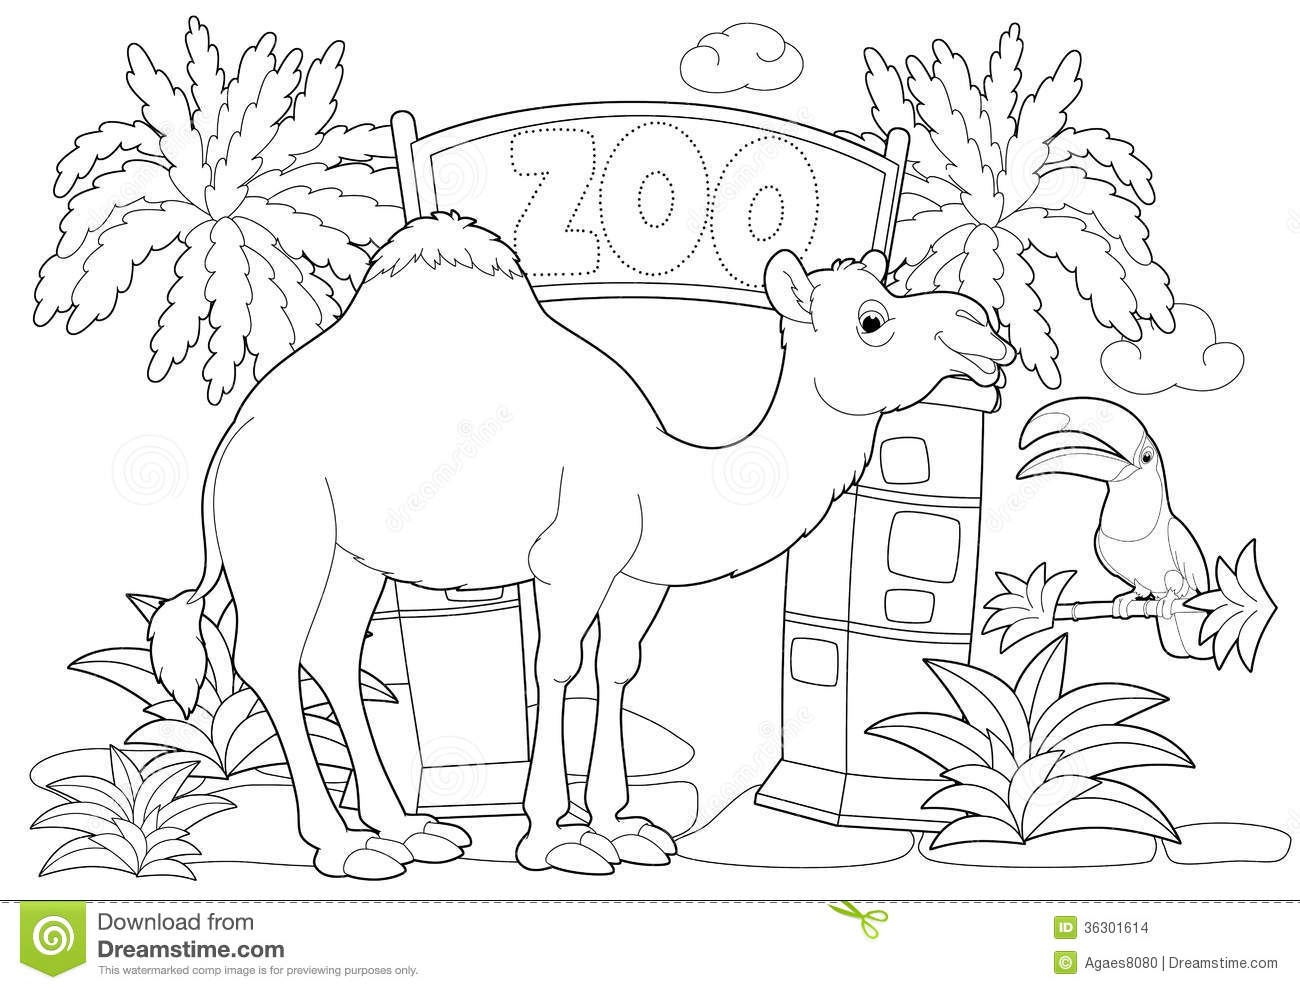 Colouring sheet zoo - Coloring Page The Zoo Illustration For The Children